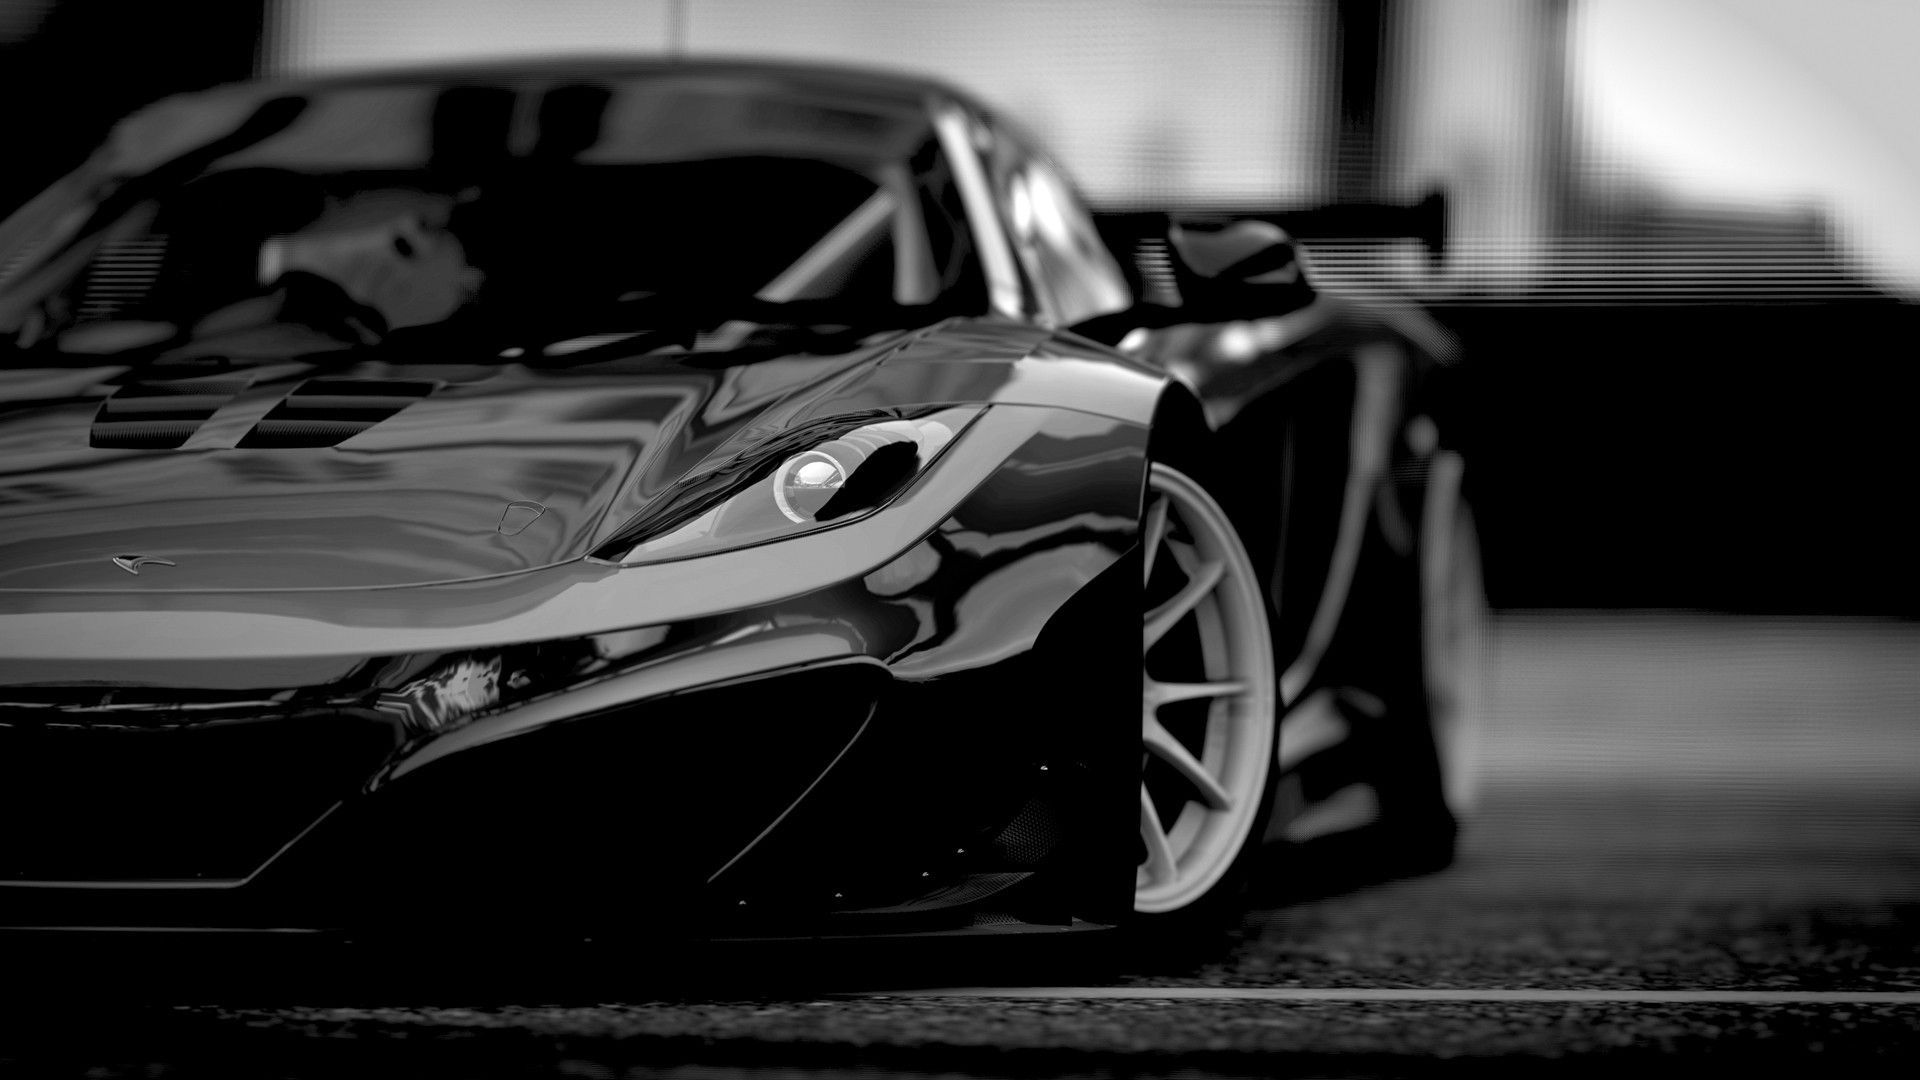 Black And White Car Wallpapers Top Free Black And White Car Backgrounds Wallpaperaccess